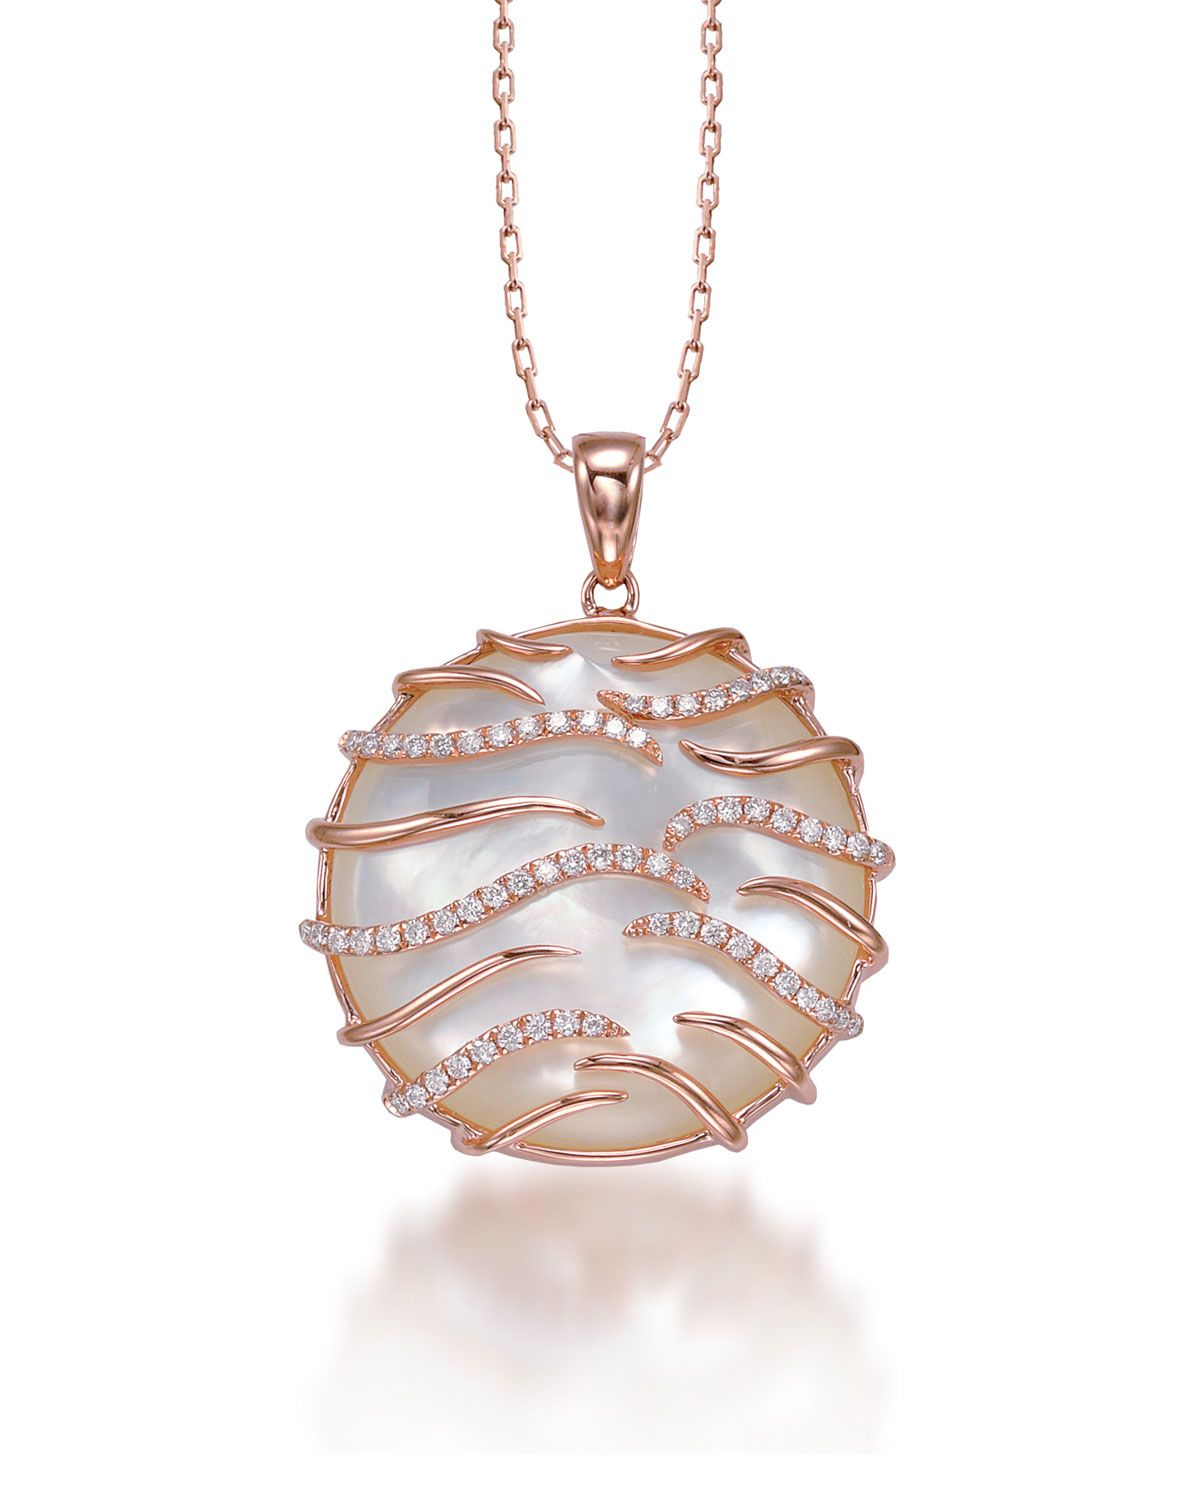 Luna Small 18k Pink Gold Mother-of-Pearl Pendant Necklace, Size: S - Frederic Sage